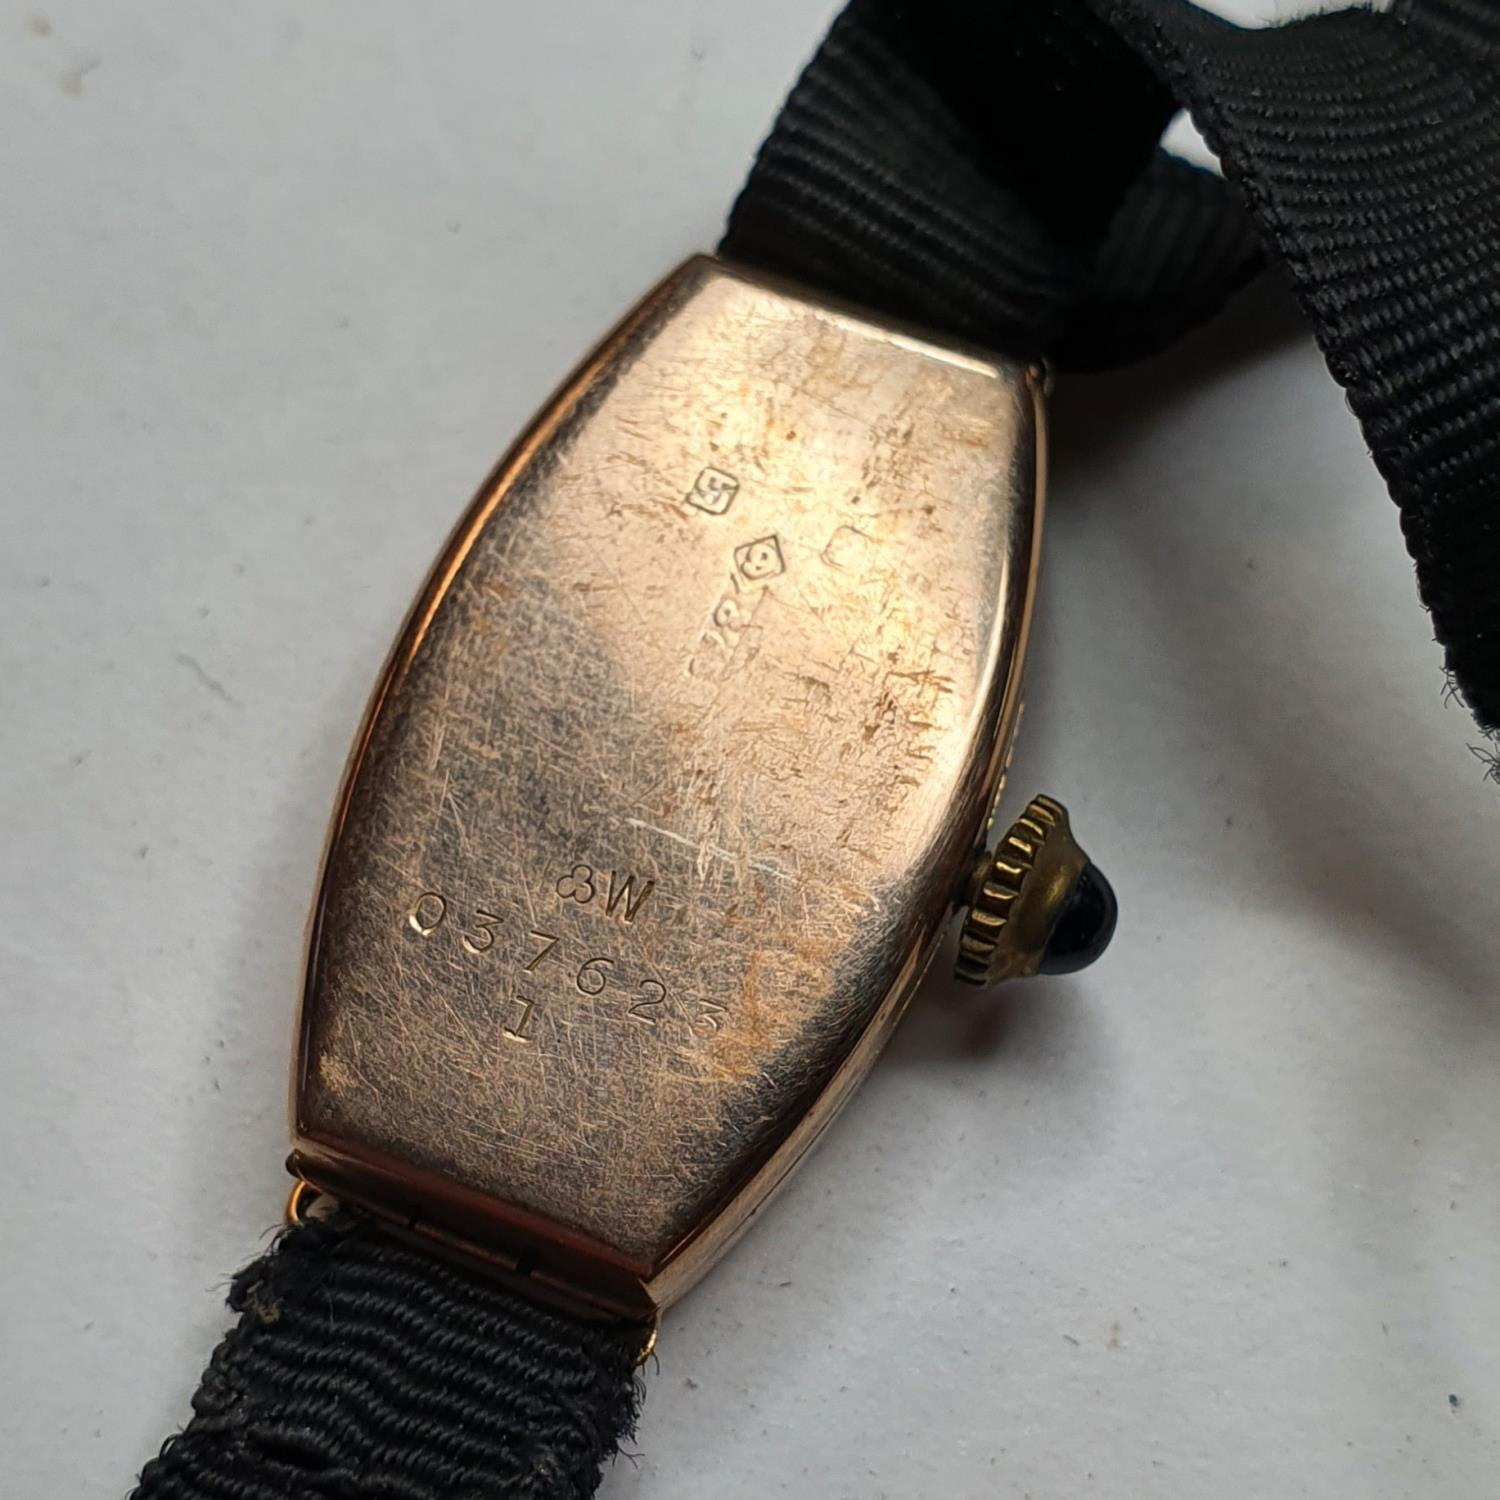 A lady's 9ct wristwatch, costume jewellery and other items - Image 2 of 2